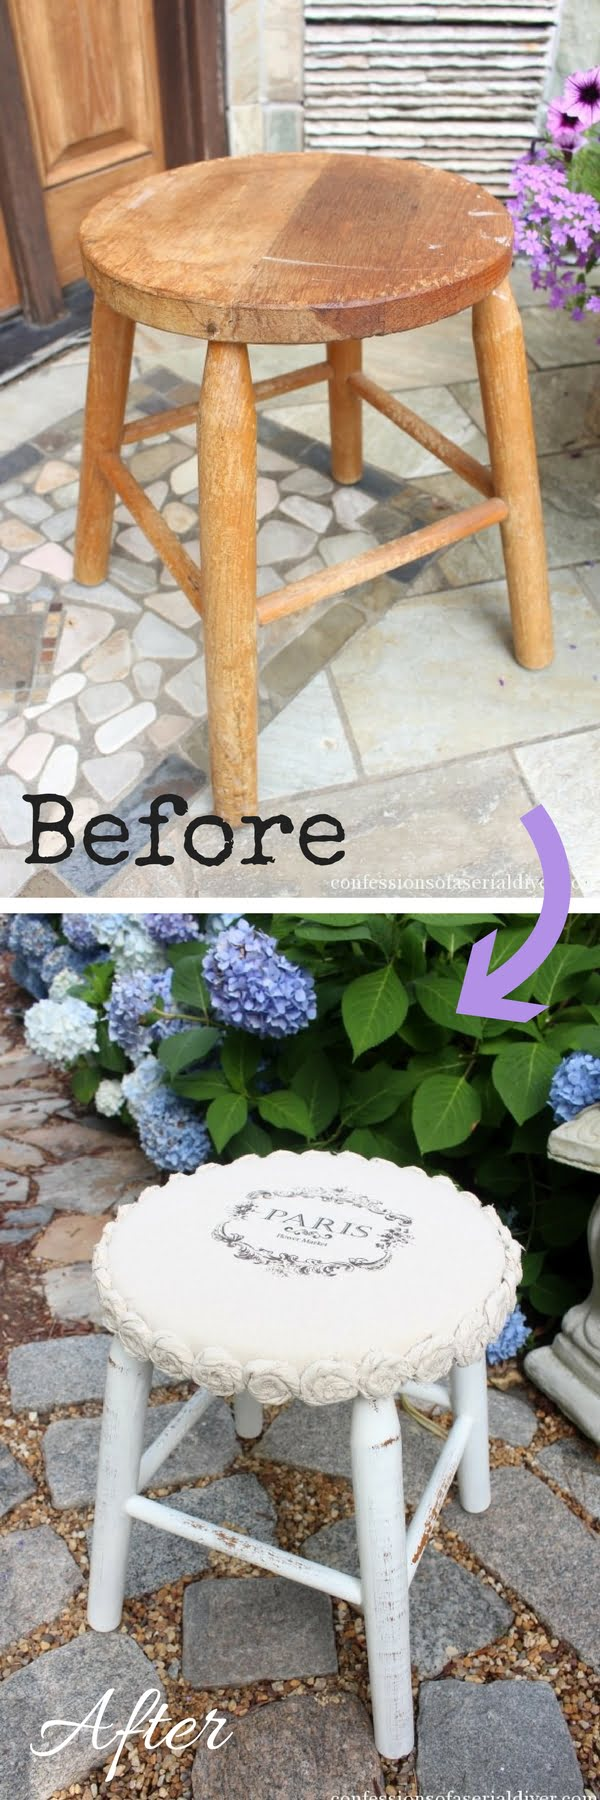 Check out how to make an easy DIY shabby chic Rosette Stool